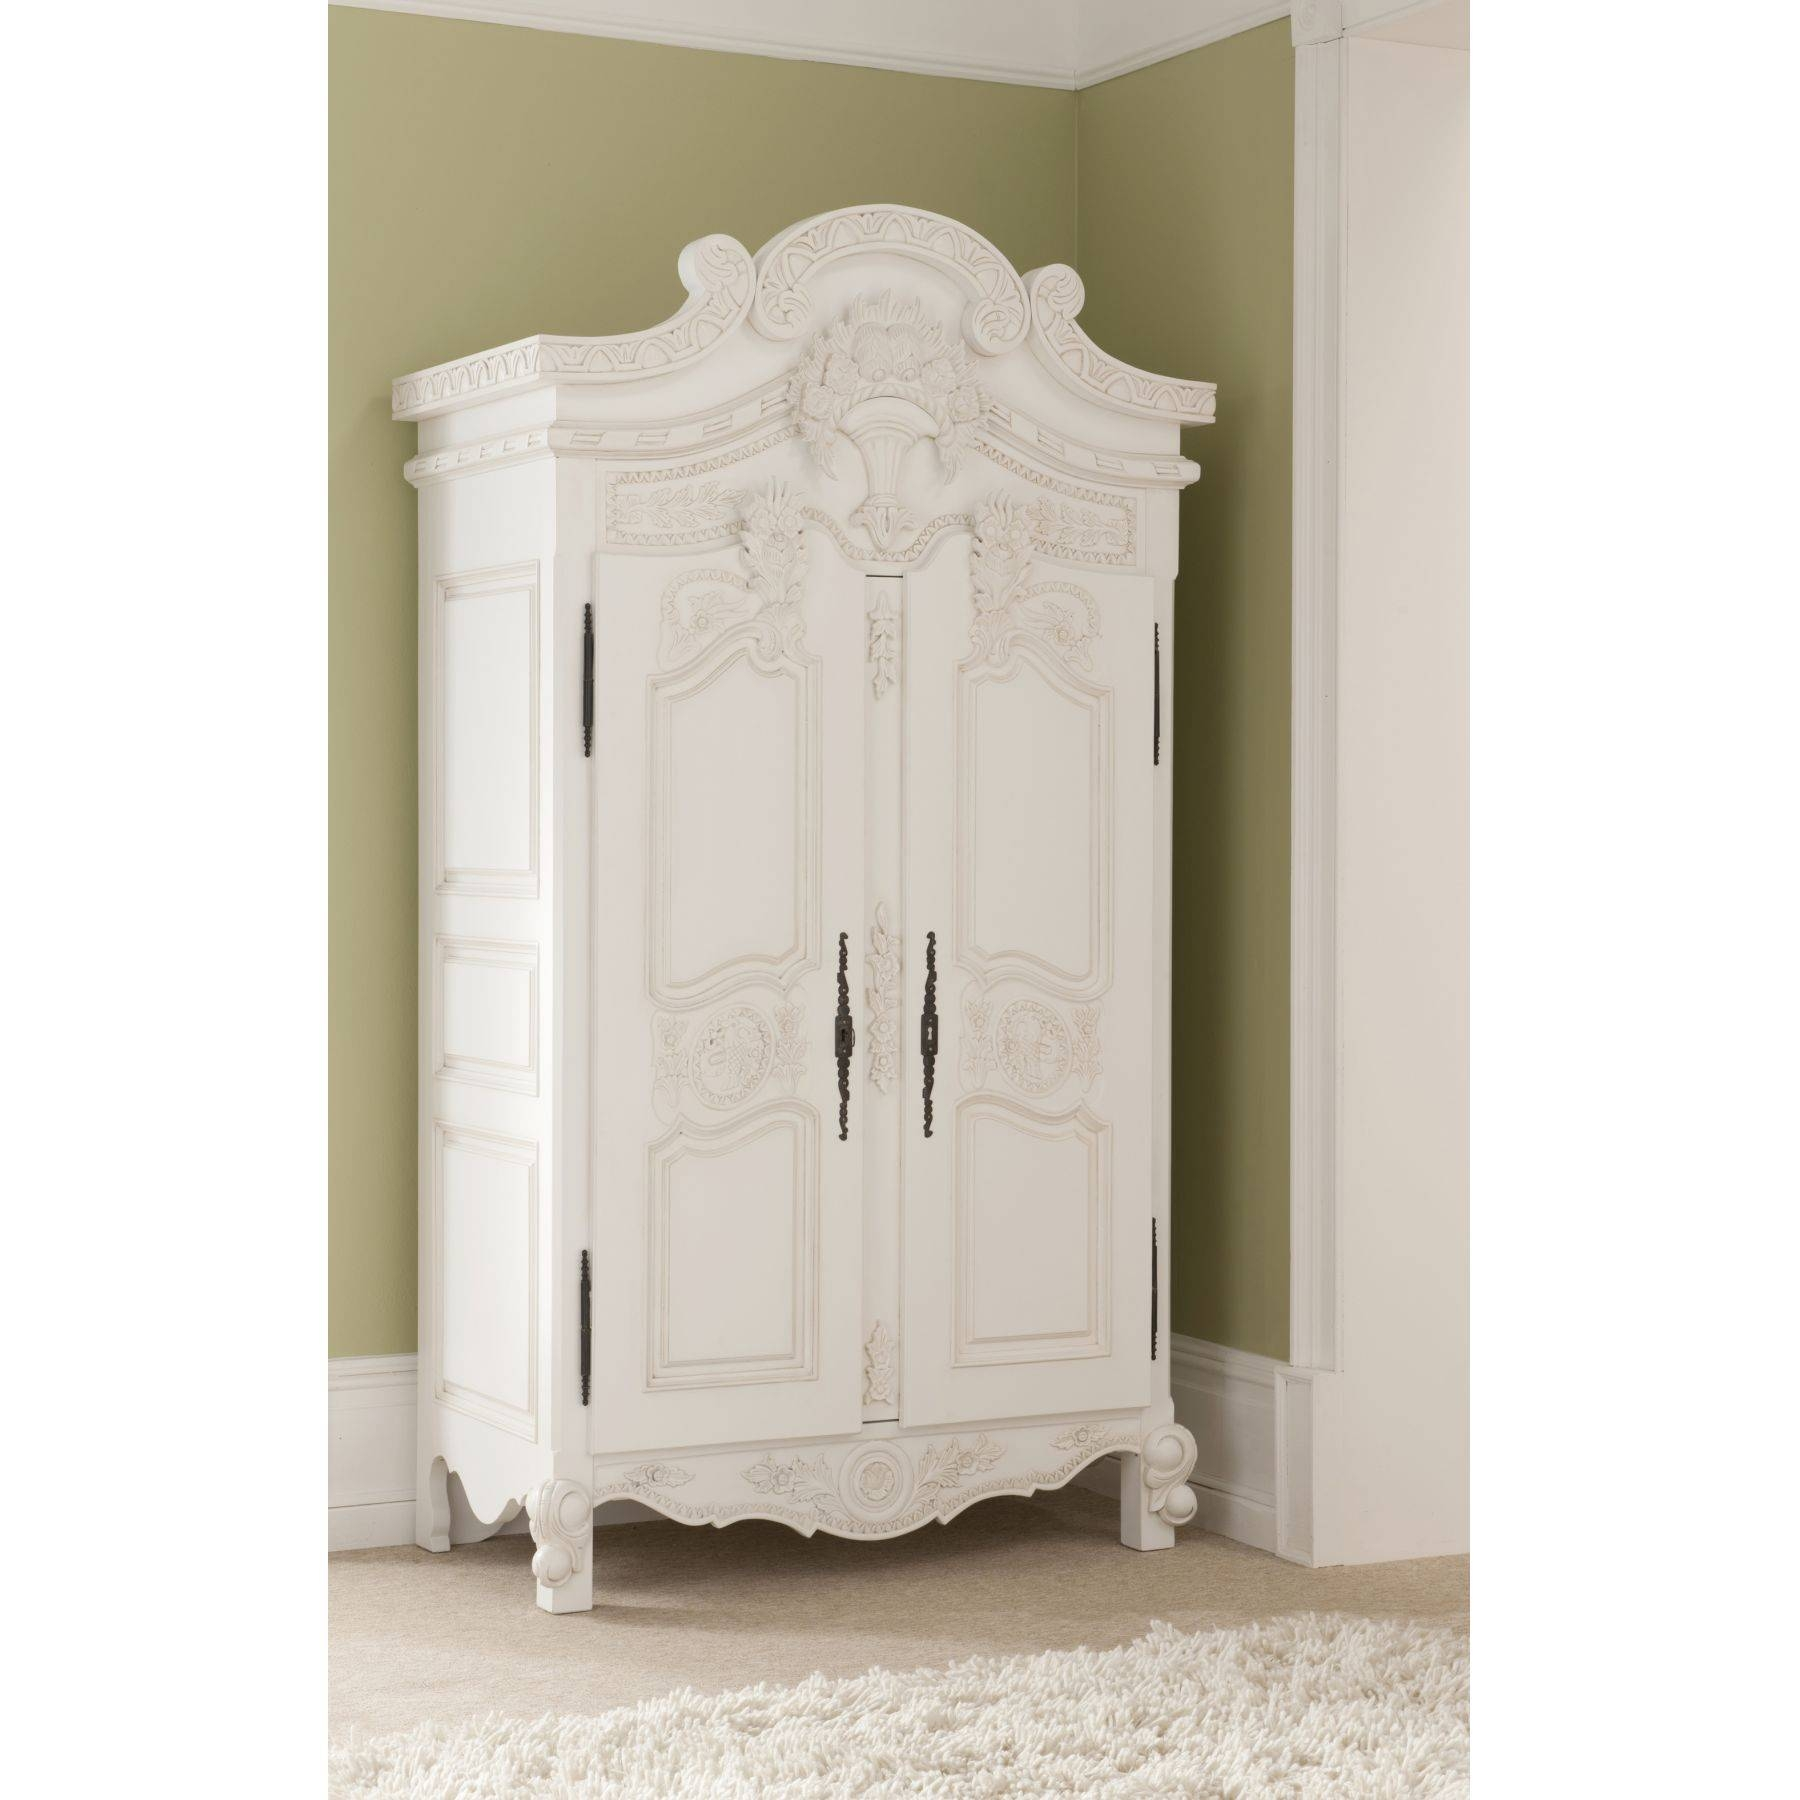 Rococo Antique French Wardrobe A Stunning Addition To Our Shabby throughout Antique White Wardrobes (Image 12 of 15)